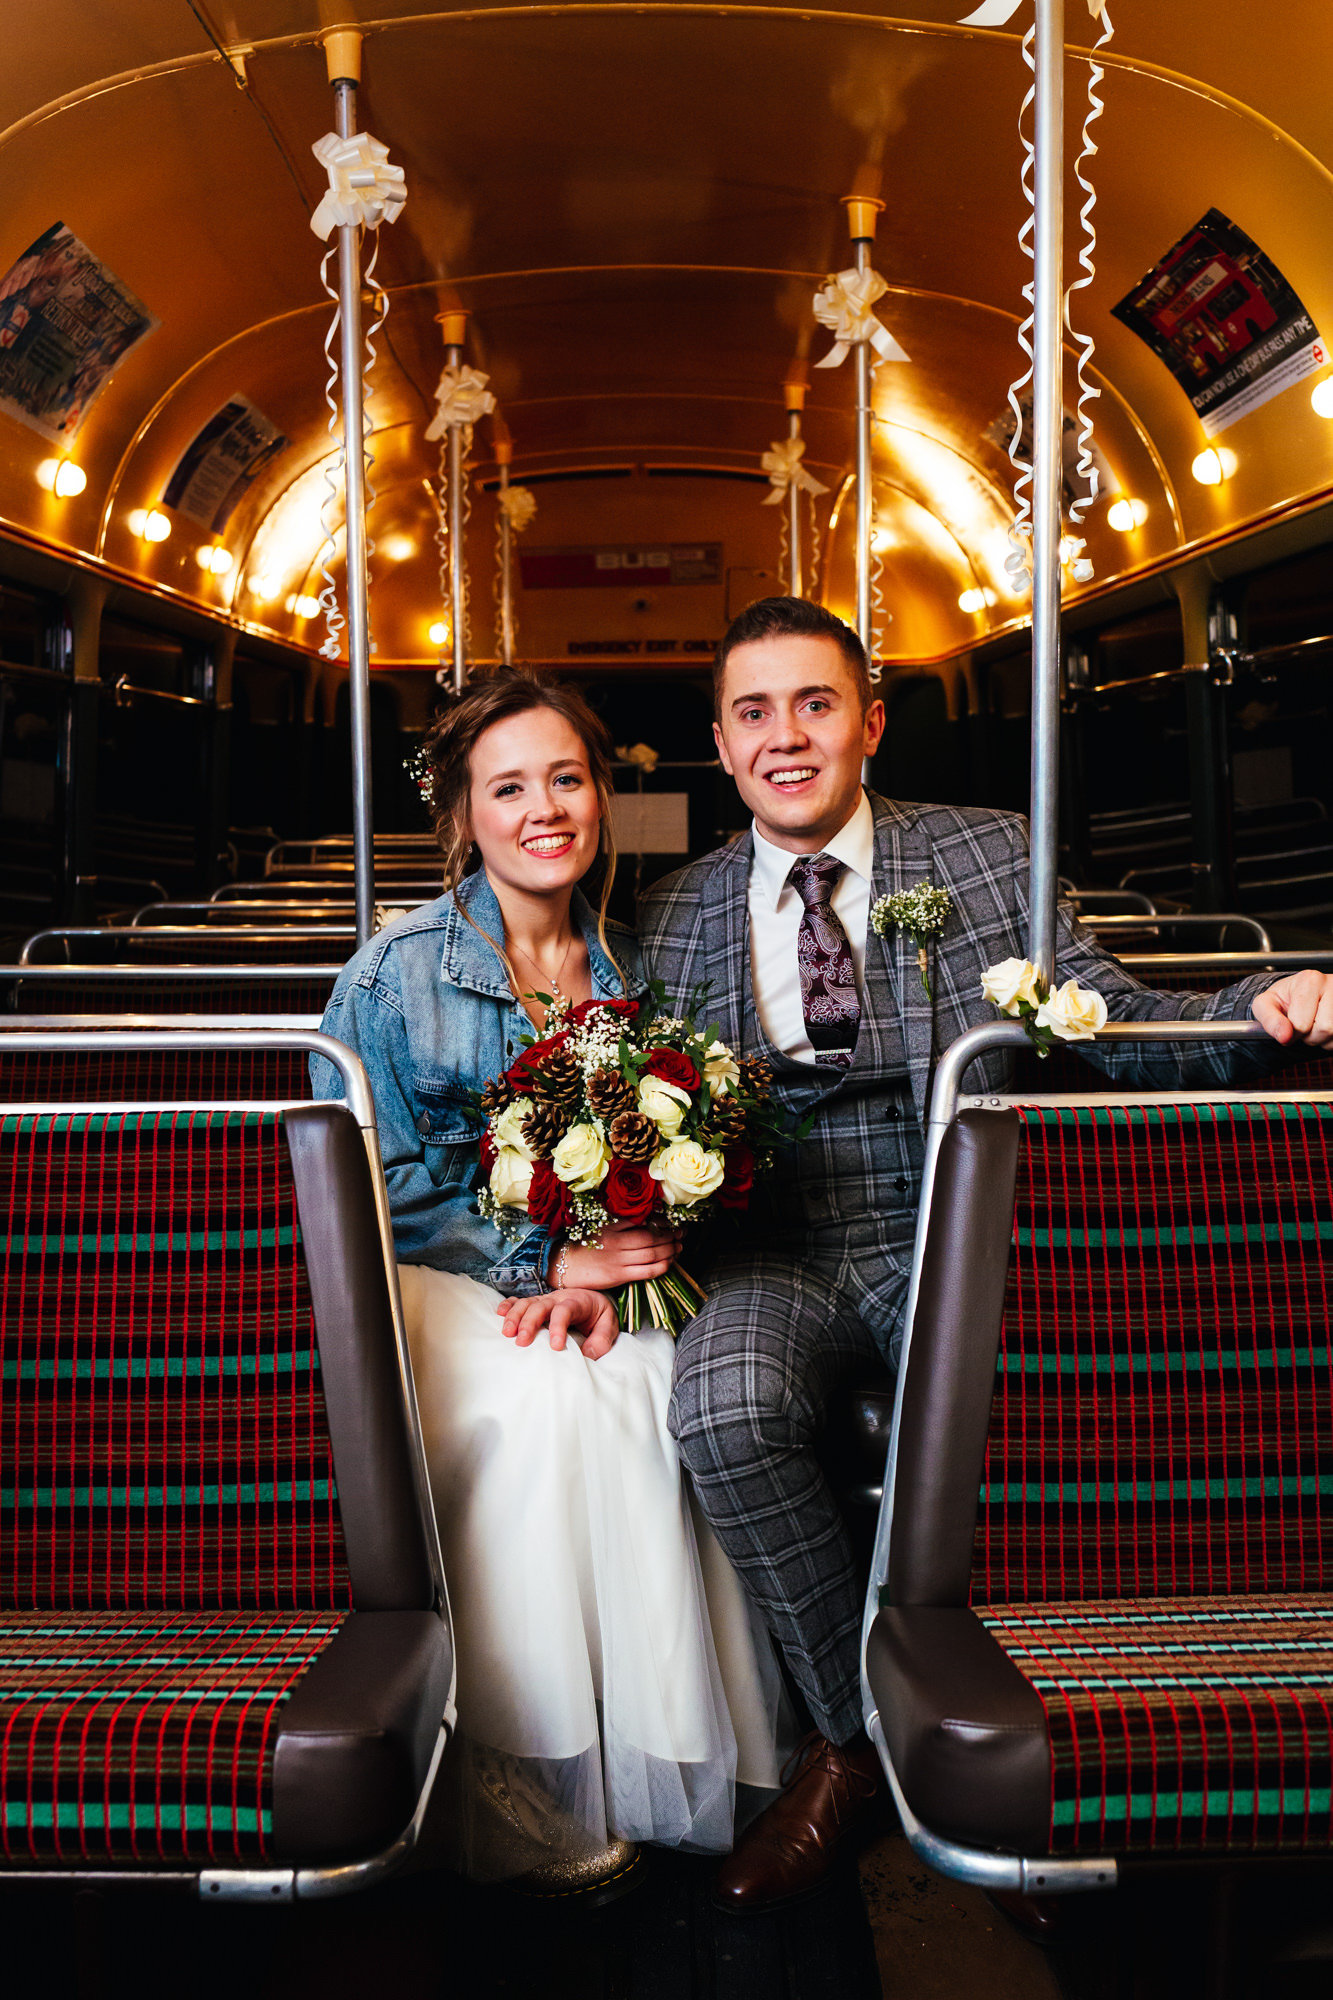 Winter weddings - Couple on vintage bus on there wedding day